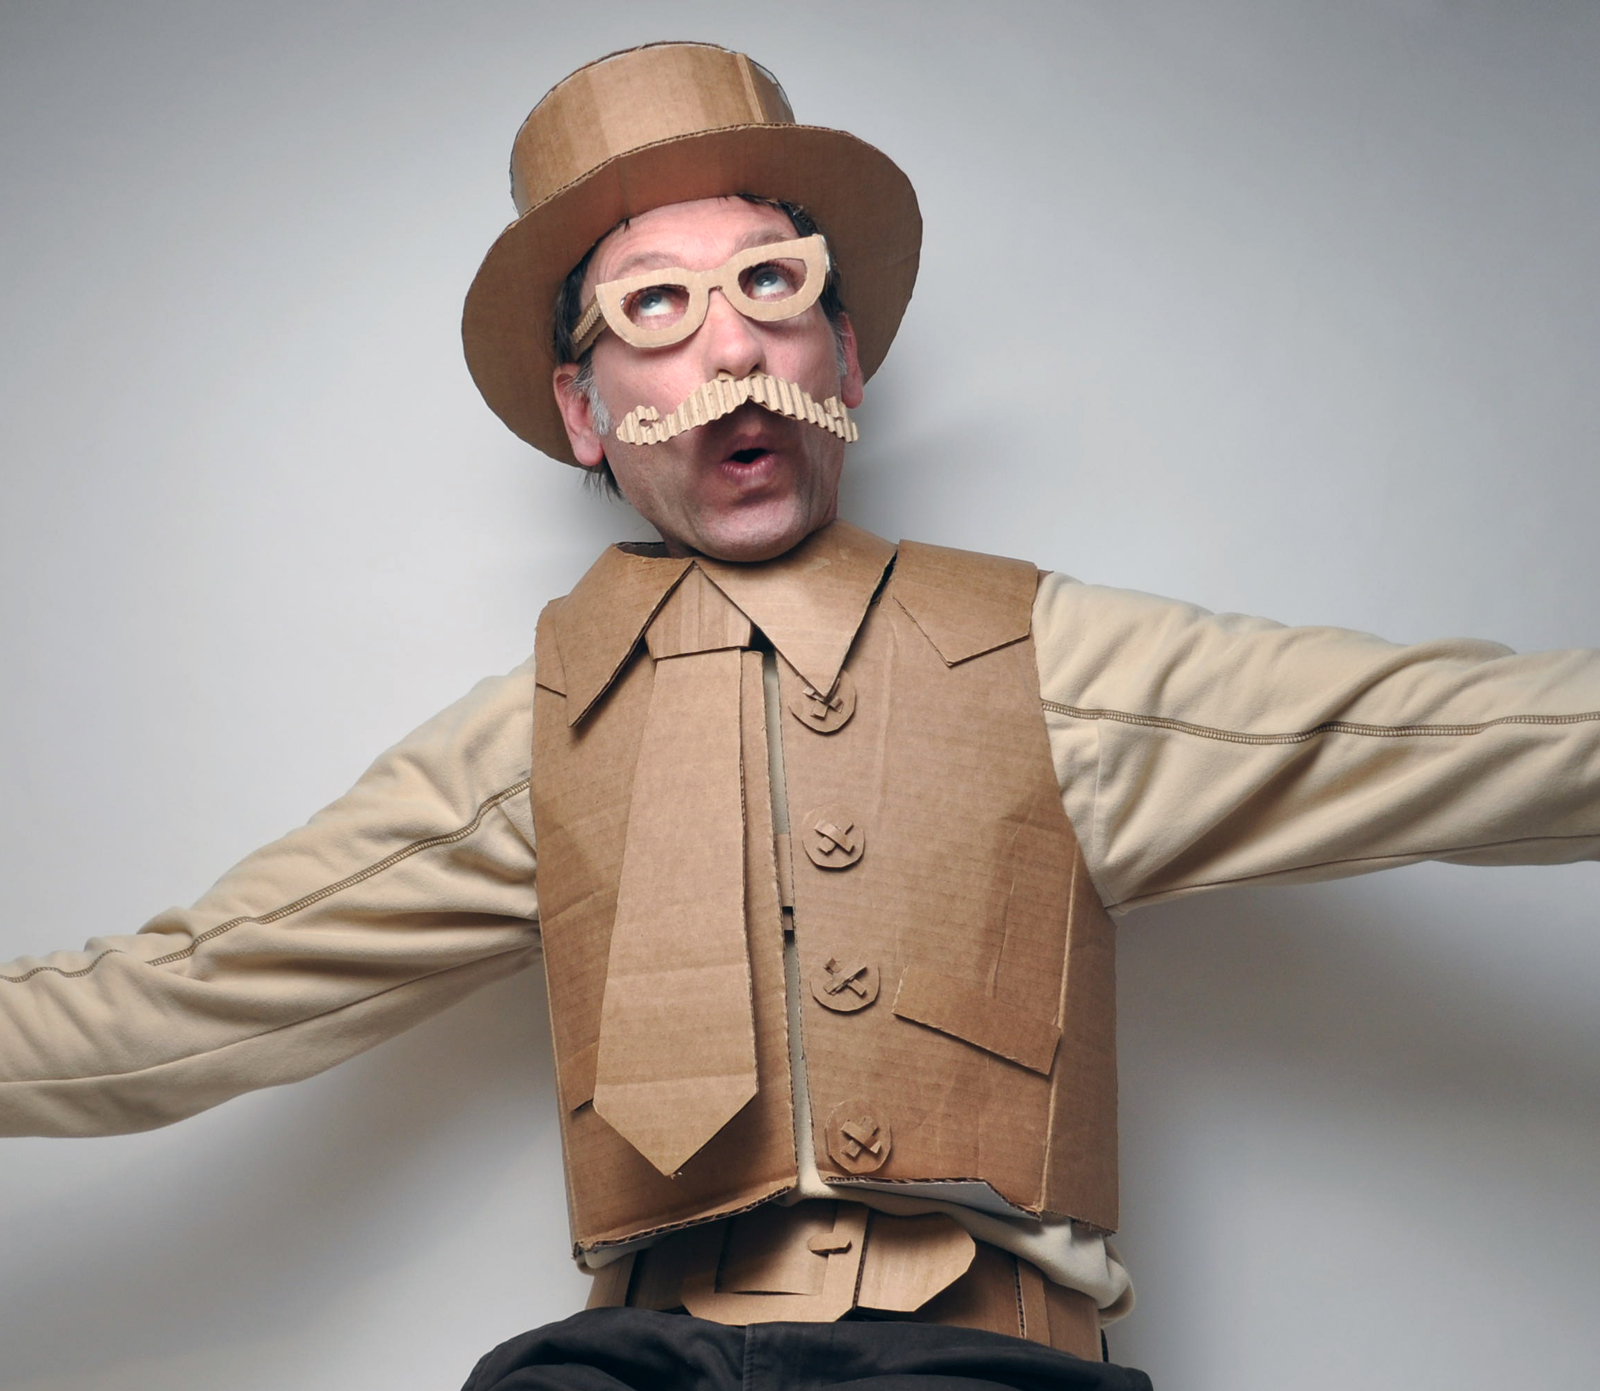 15 Halloween Costumes That Artfully Used Cardboard Boxes ...